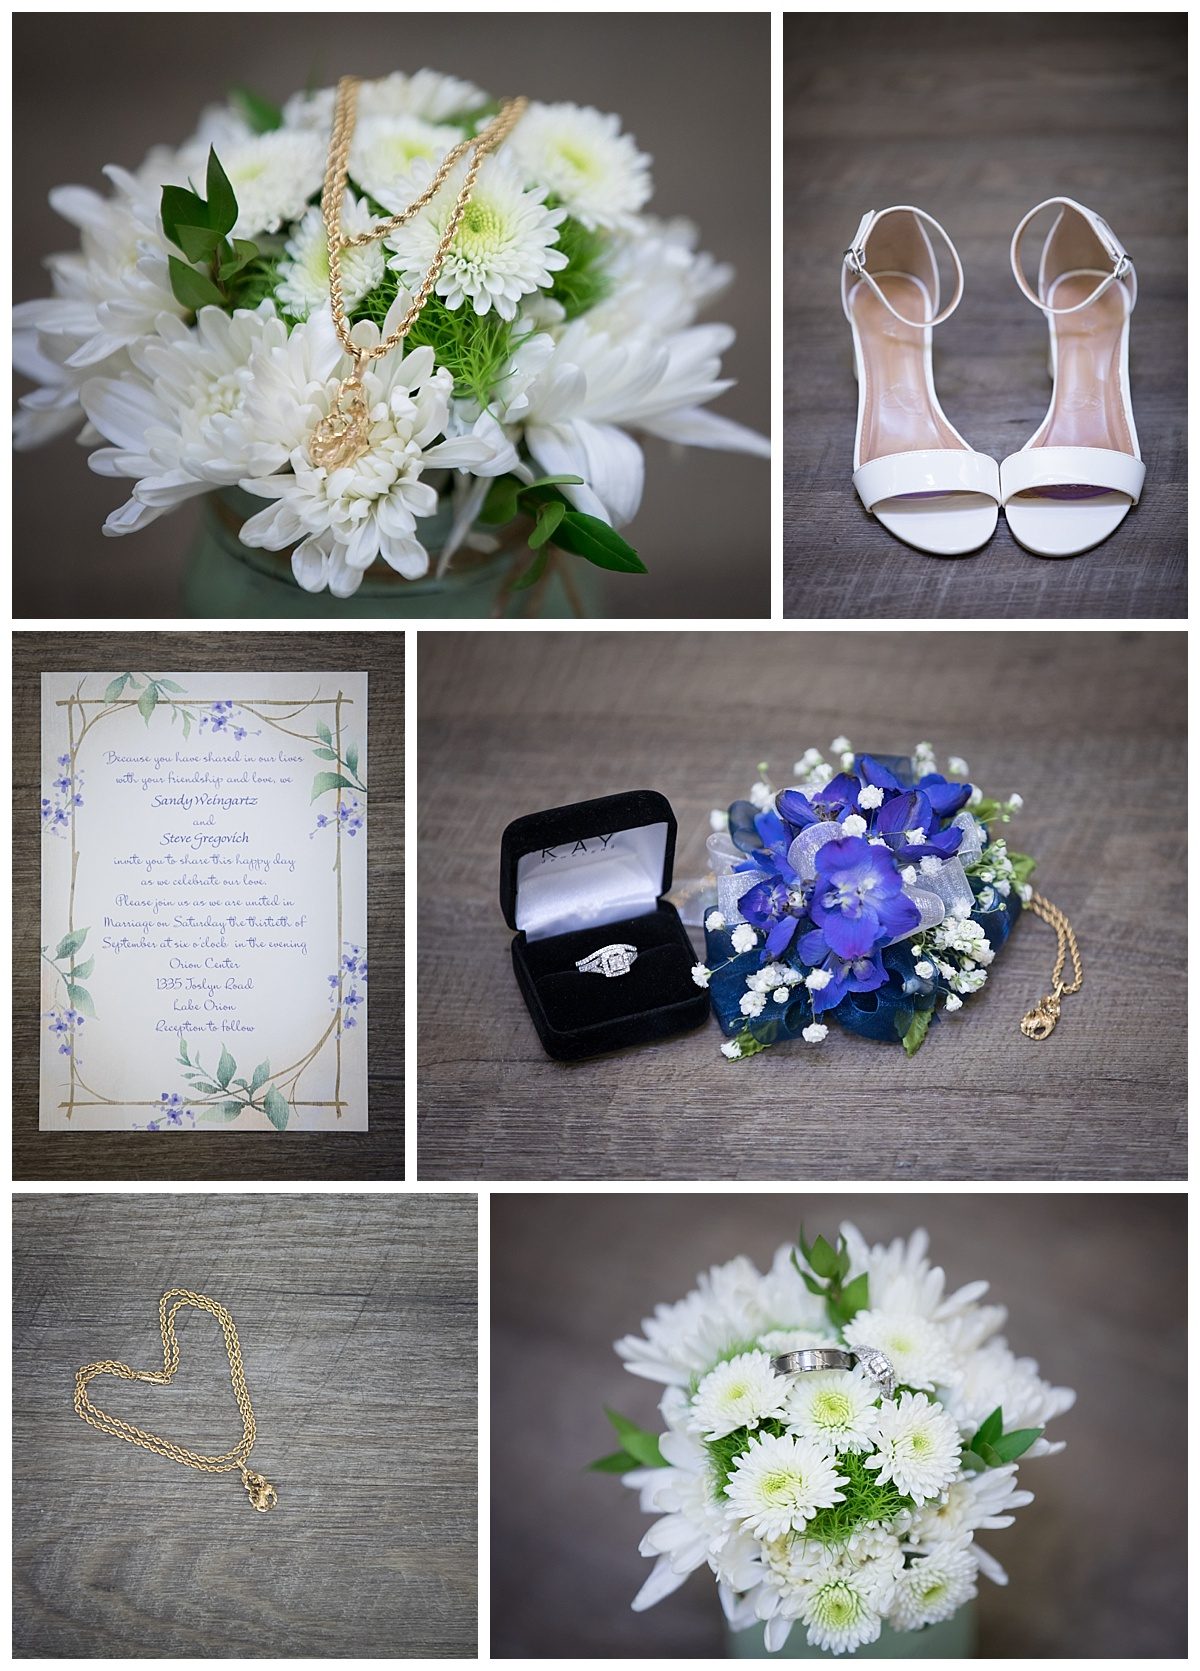 lake oprion wedding details